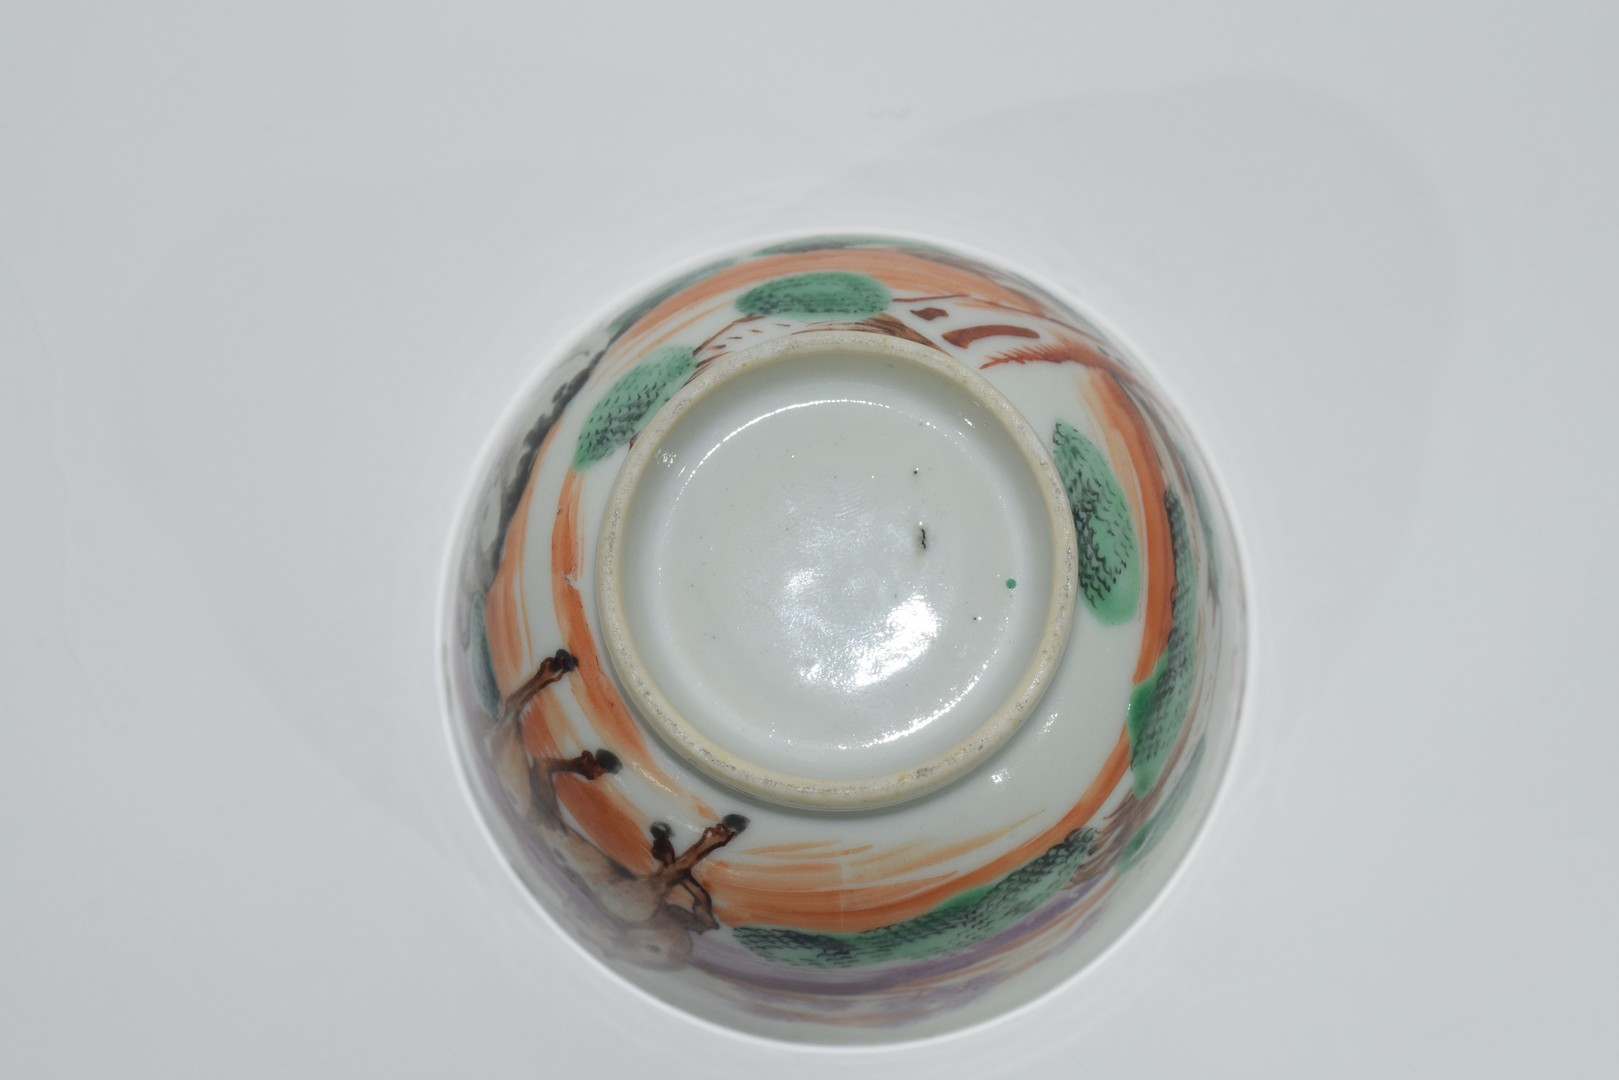 Small Chinese bowl, 18th century - Image 12 of 13